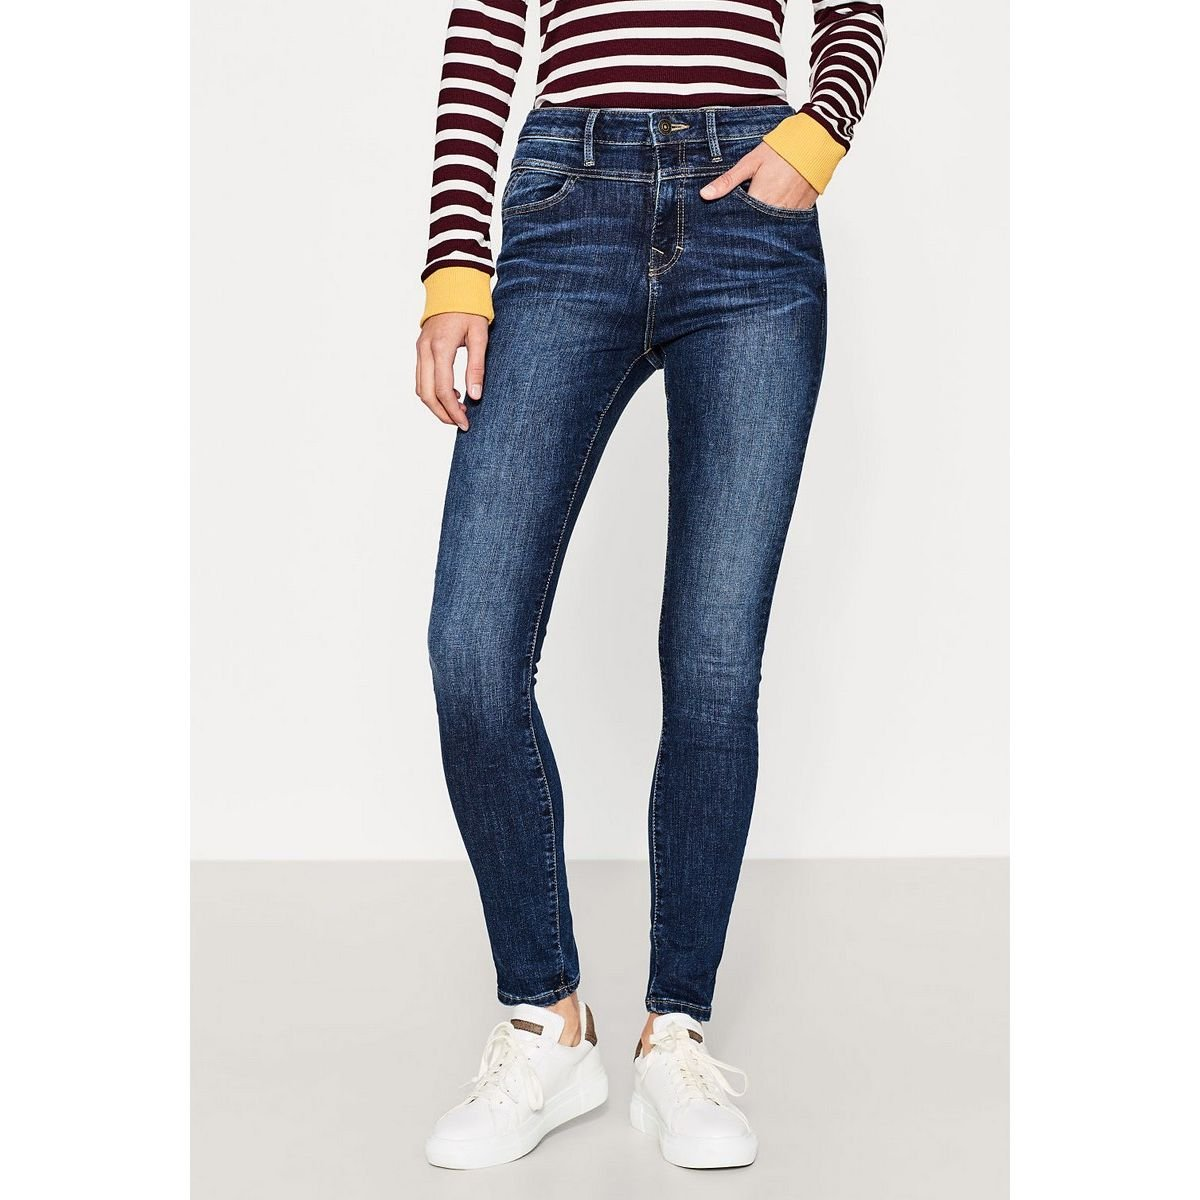 TALLA 25. edc by Esprit Jeans para Mujer